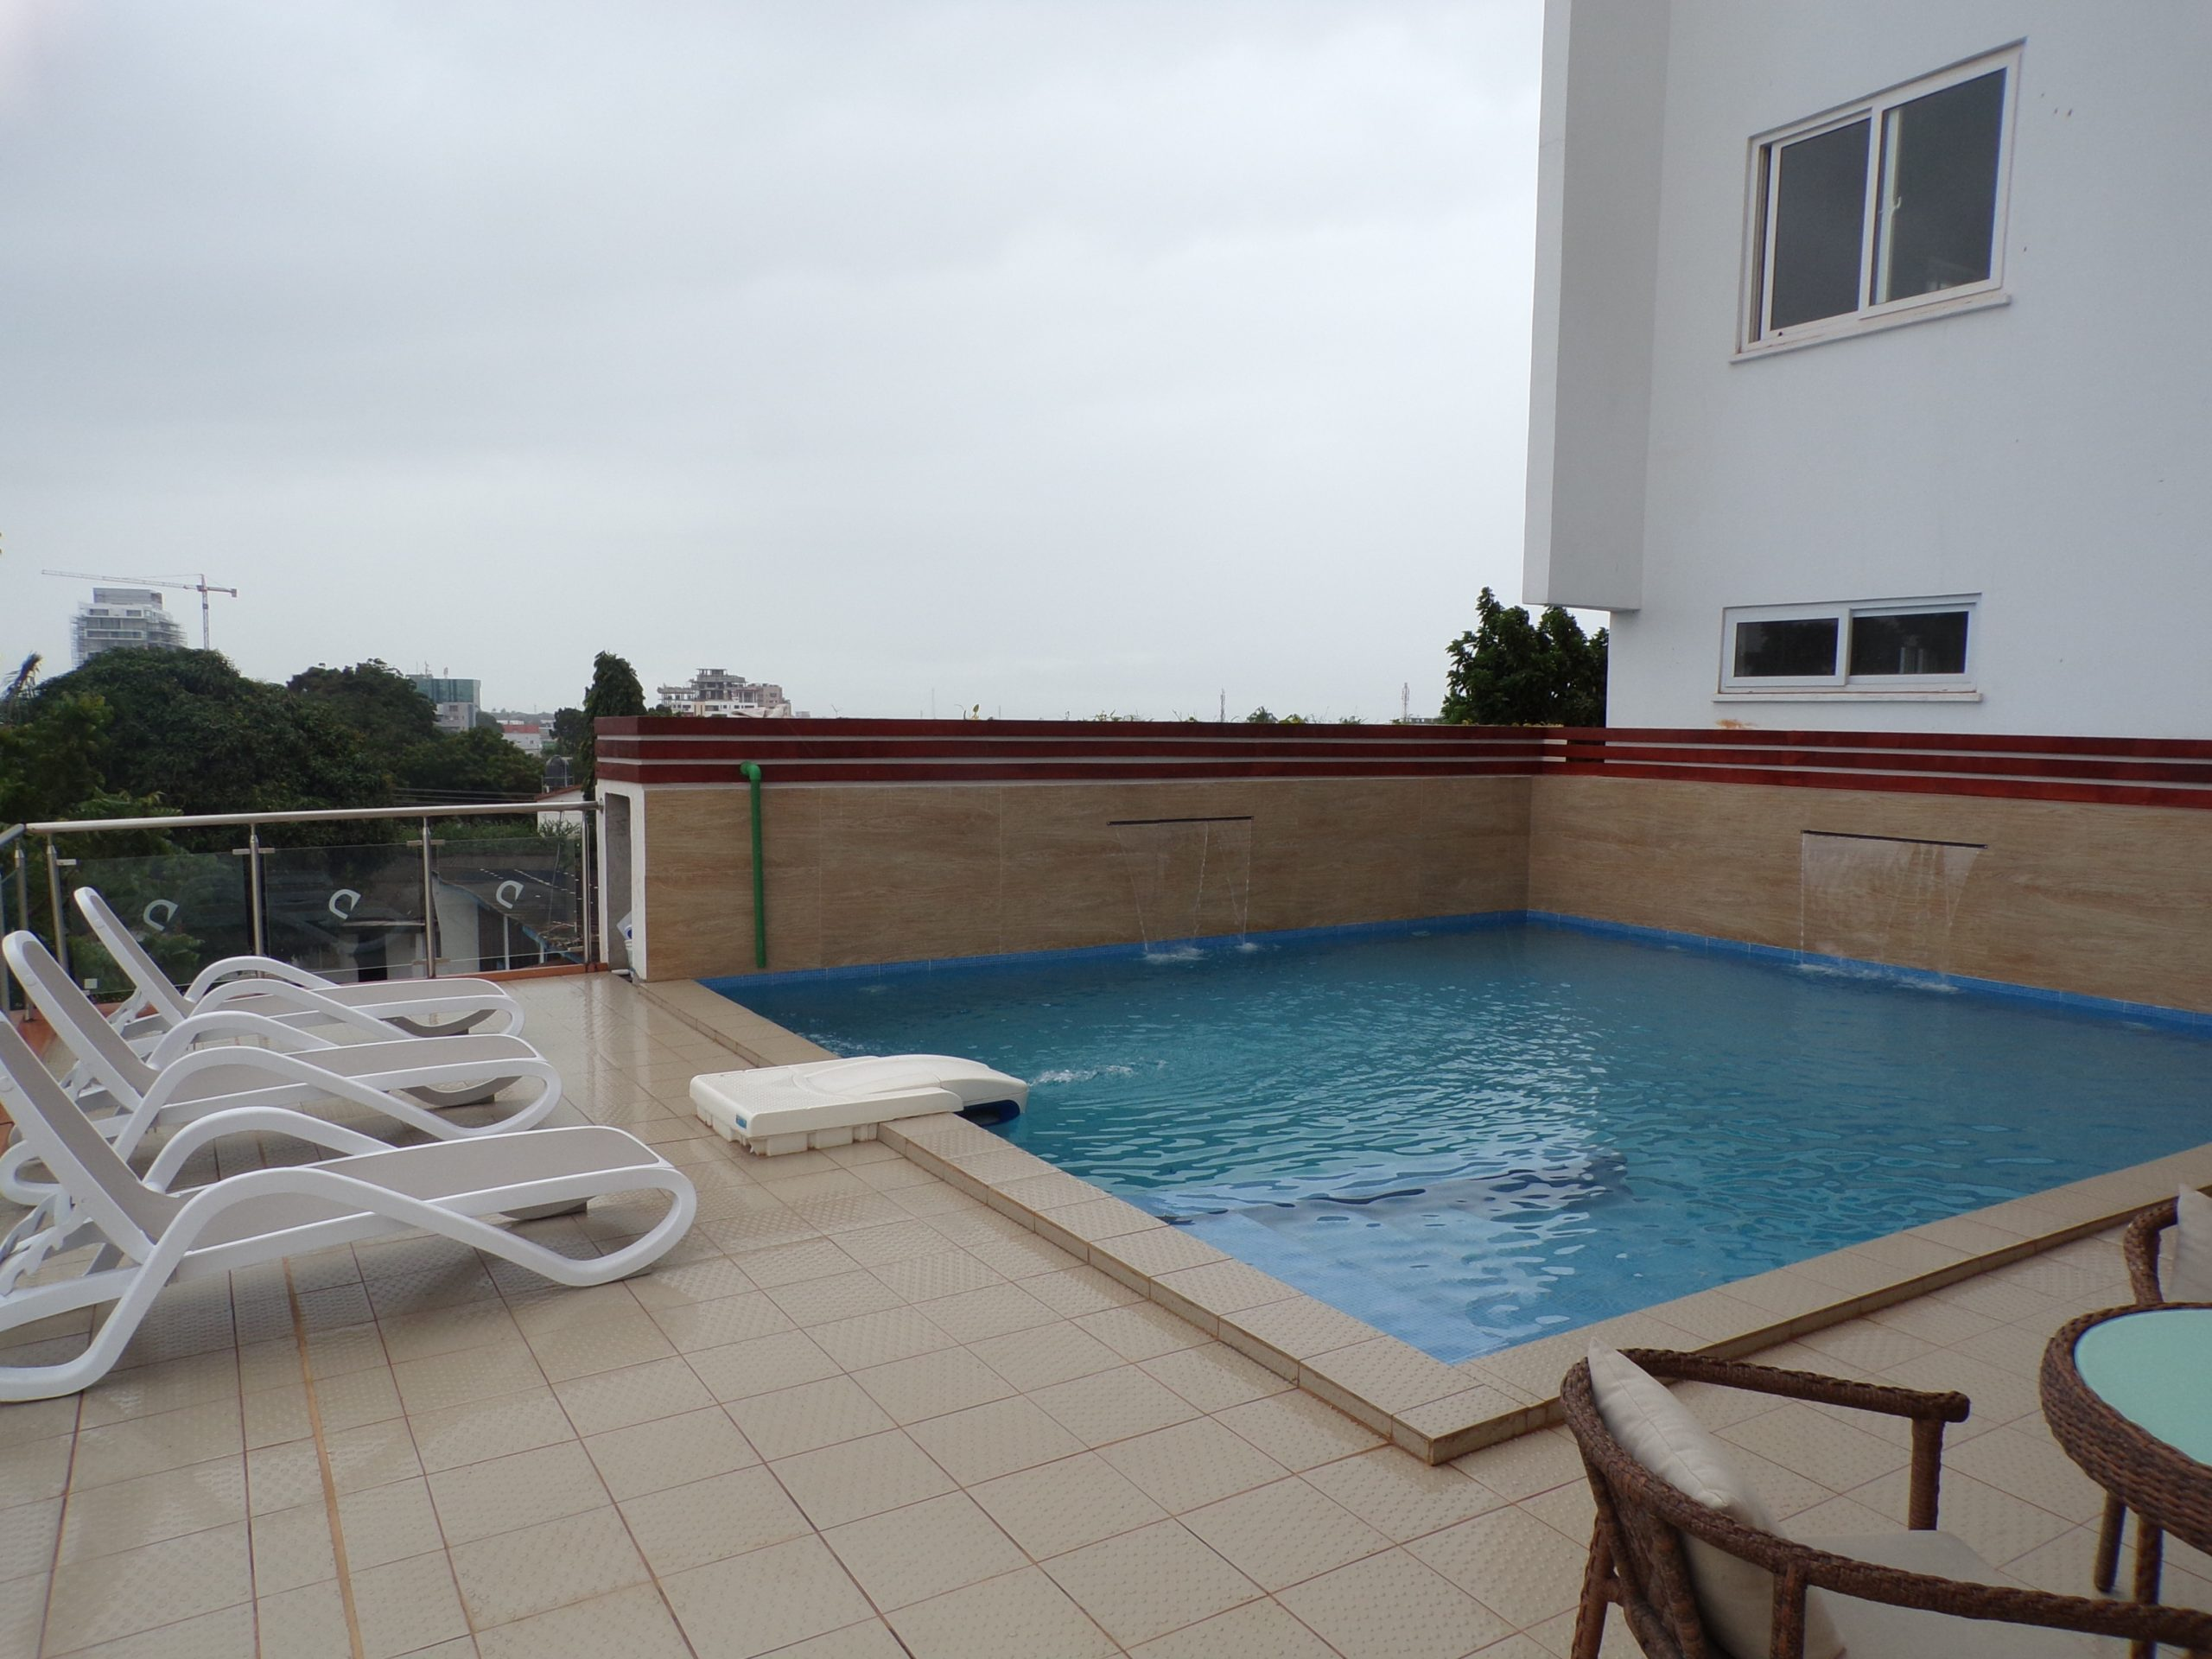 1 bedroom luxury furnished apartment for Rent in Ringway Estates.